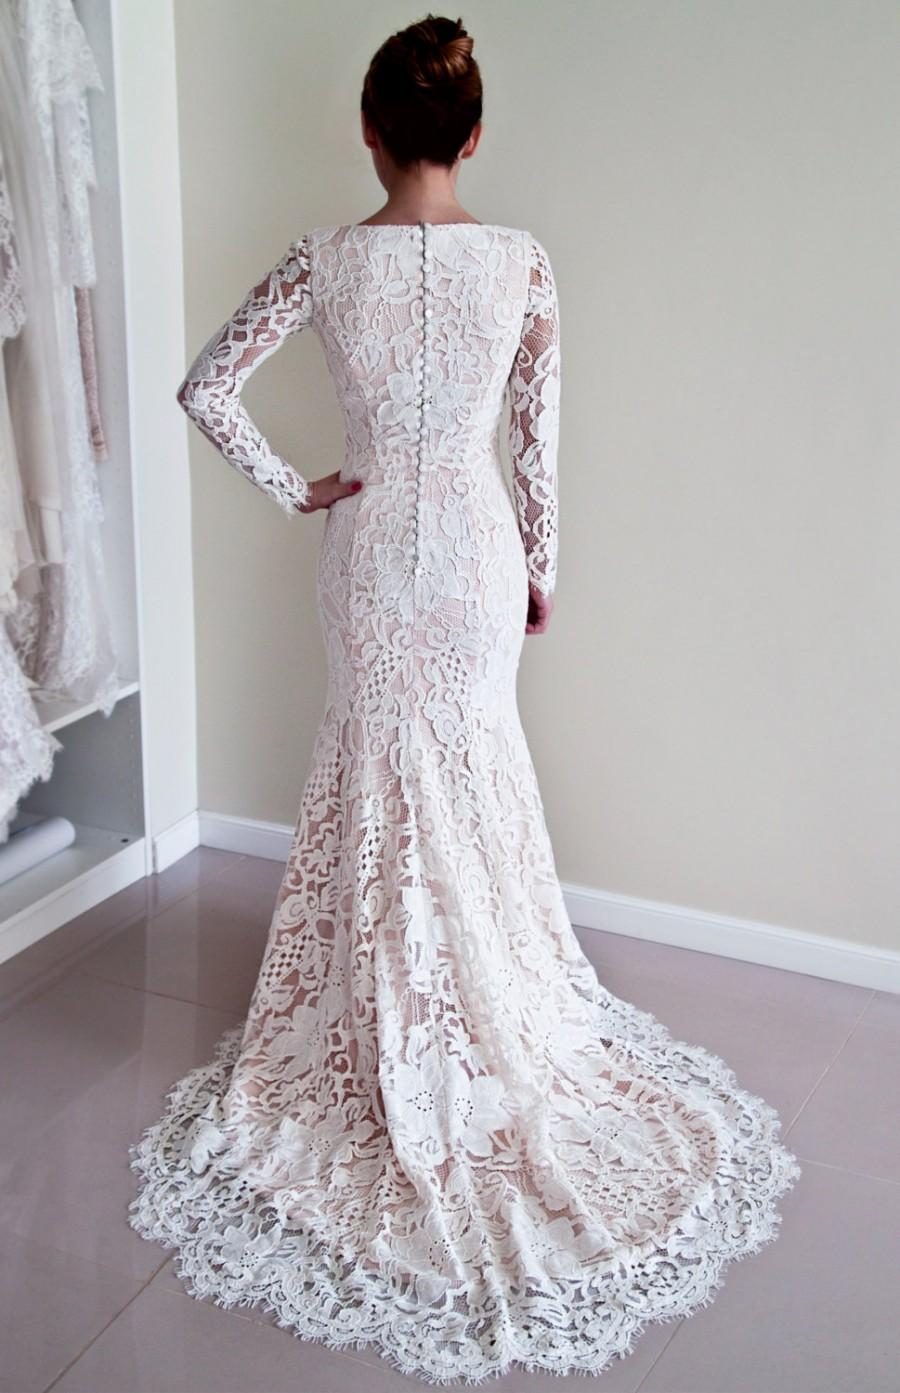 Lace Wedding Dress With Covered Back And Long Sleeves Made Of